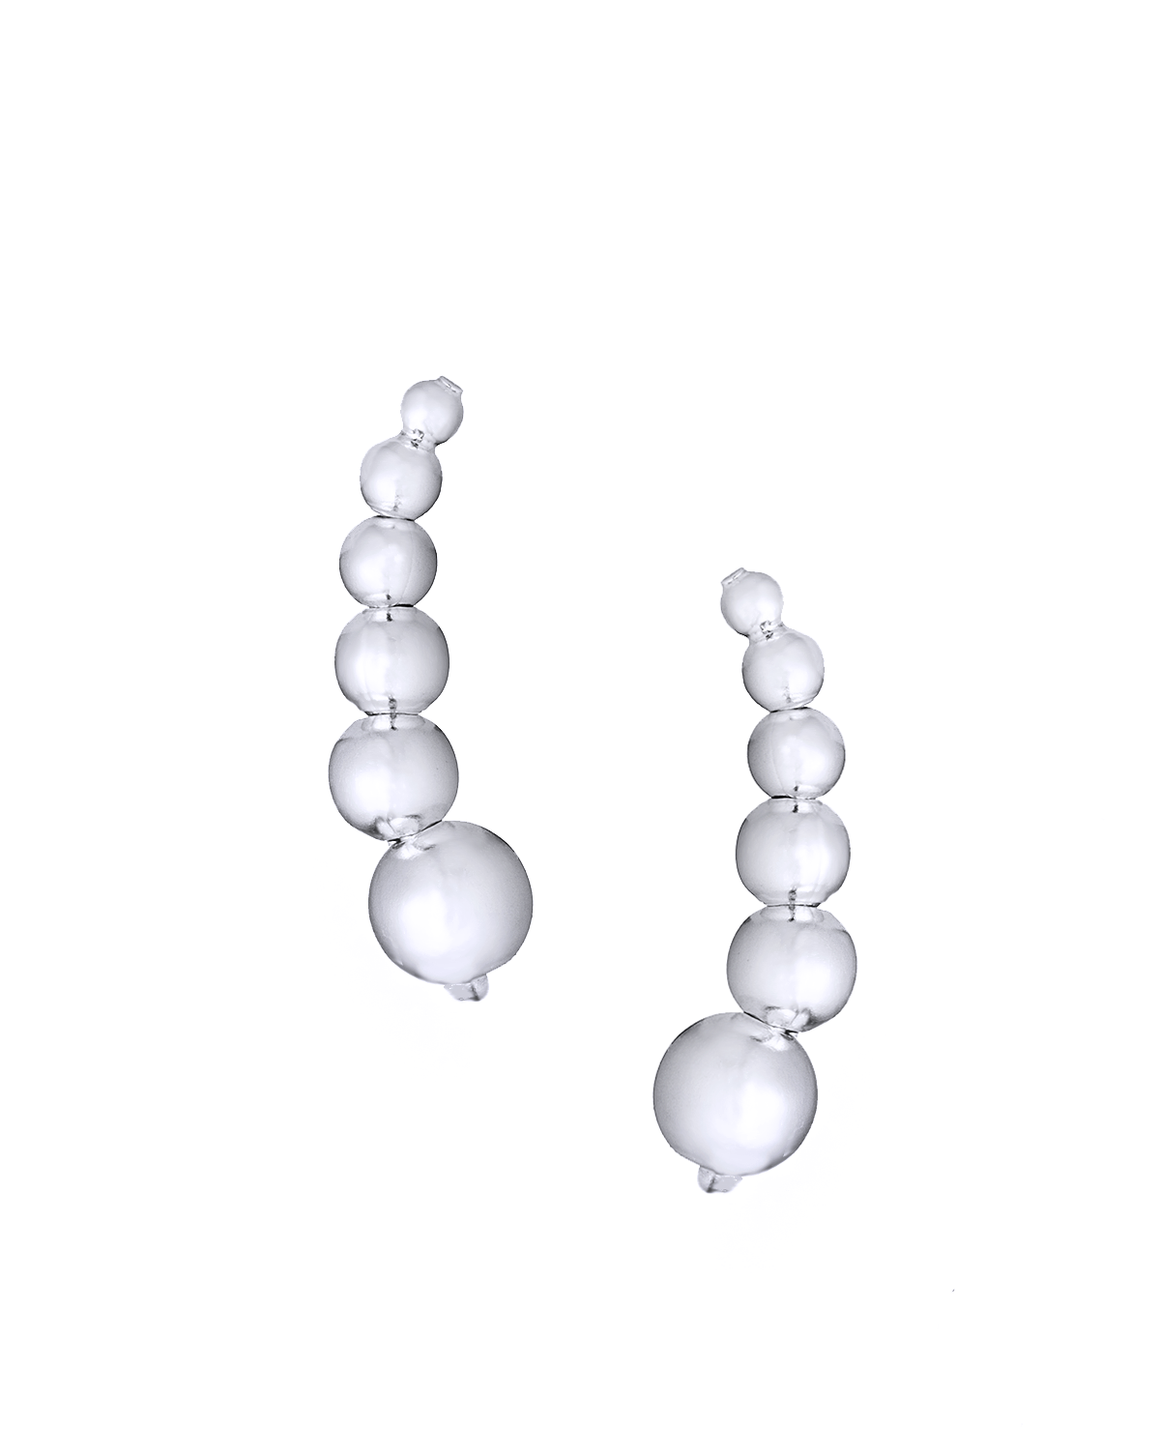 Stacked Balls Ear Climbers in Sterling Silver